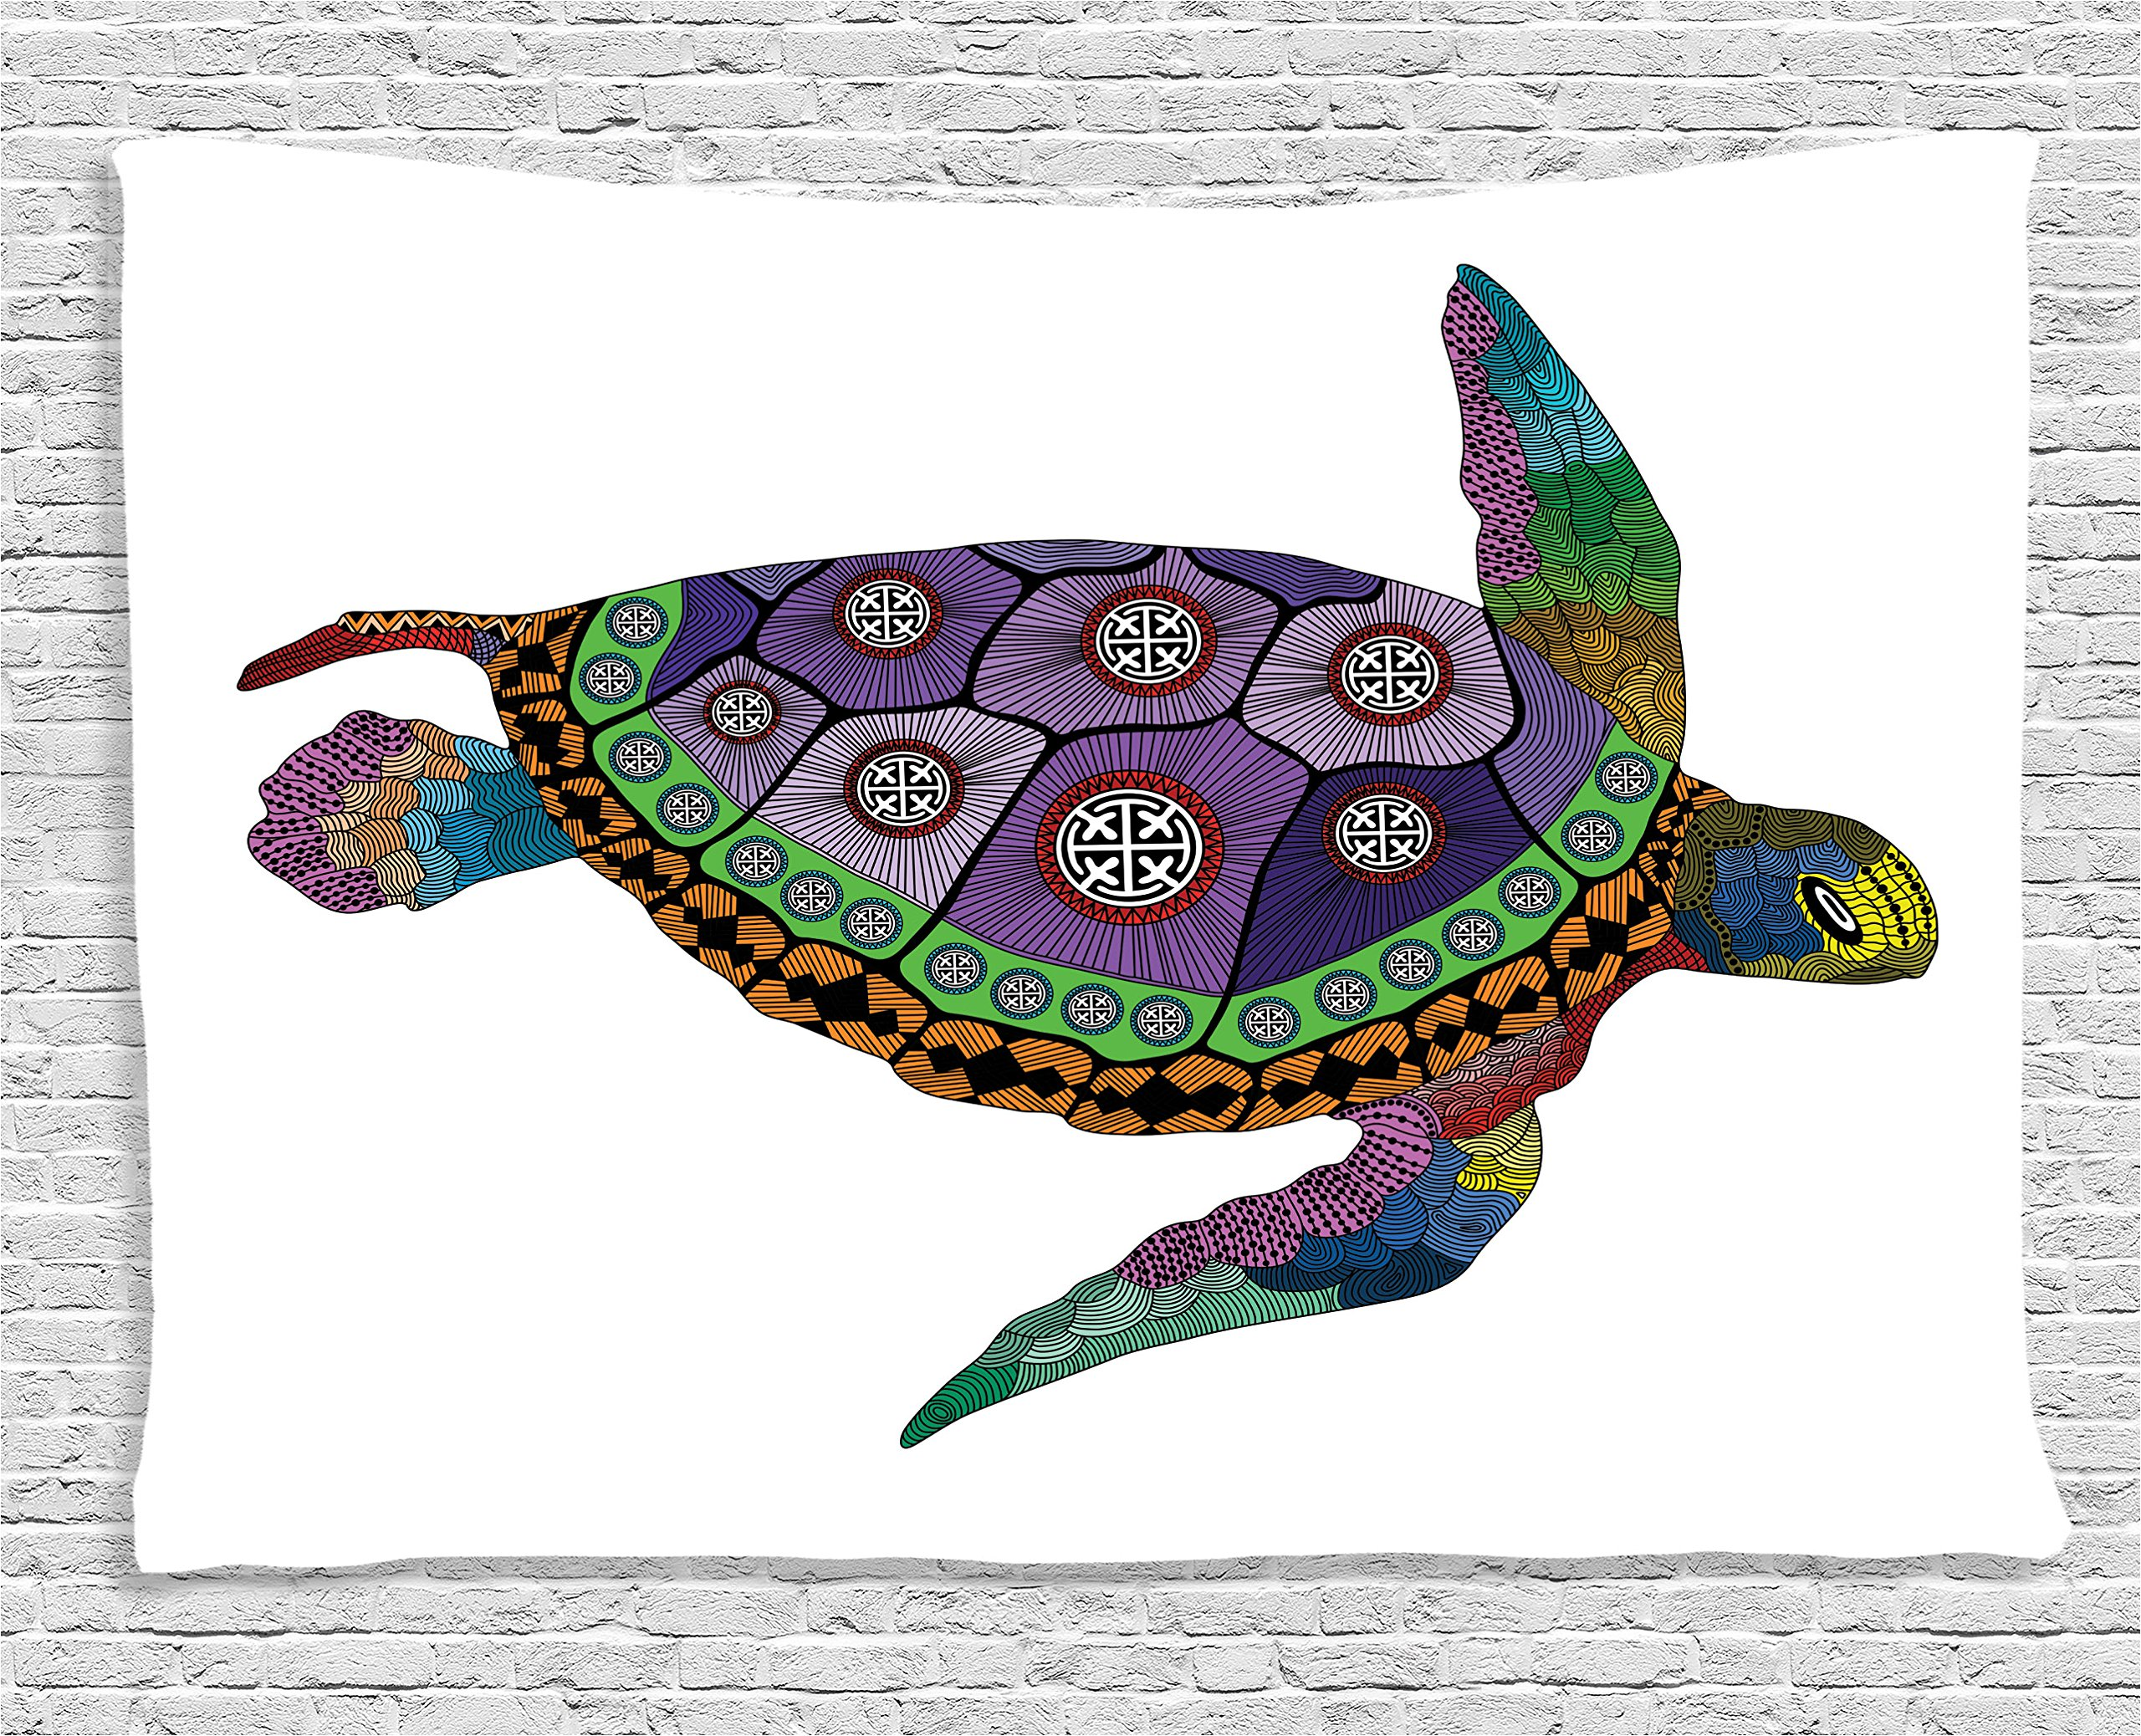 Ambesonne Psychedelic Decor Tapestry, Sea Turtle with Colorful Ornamental Tattoos on Animal Art Work, Wall Hanging for Bedroom Living Room Dorm, 60 W X 40 L inches, Purple Orange Pink